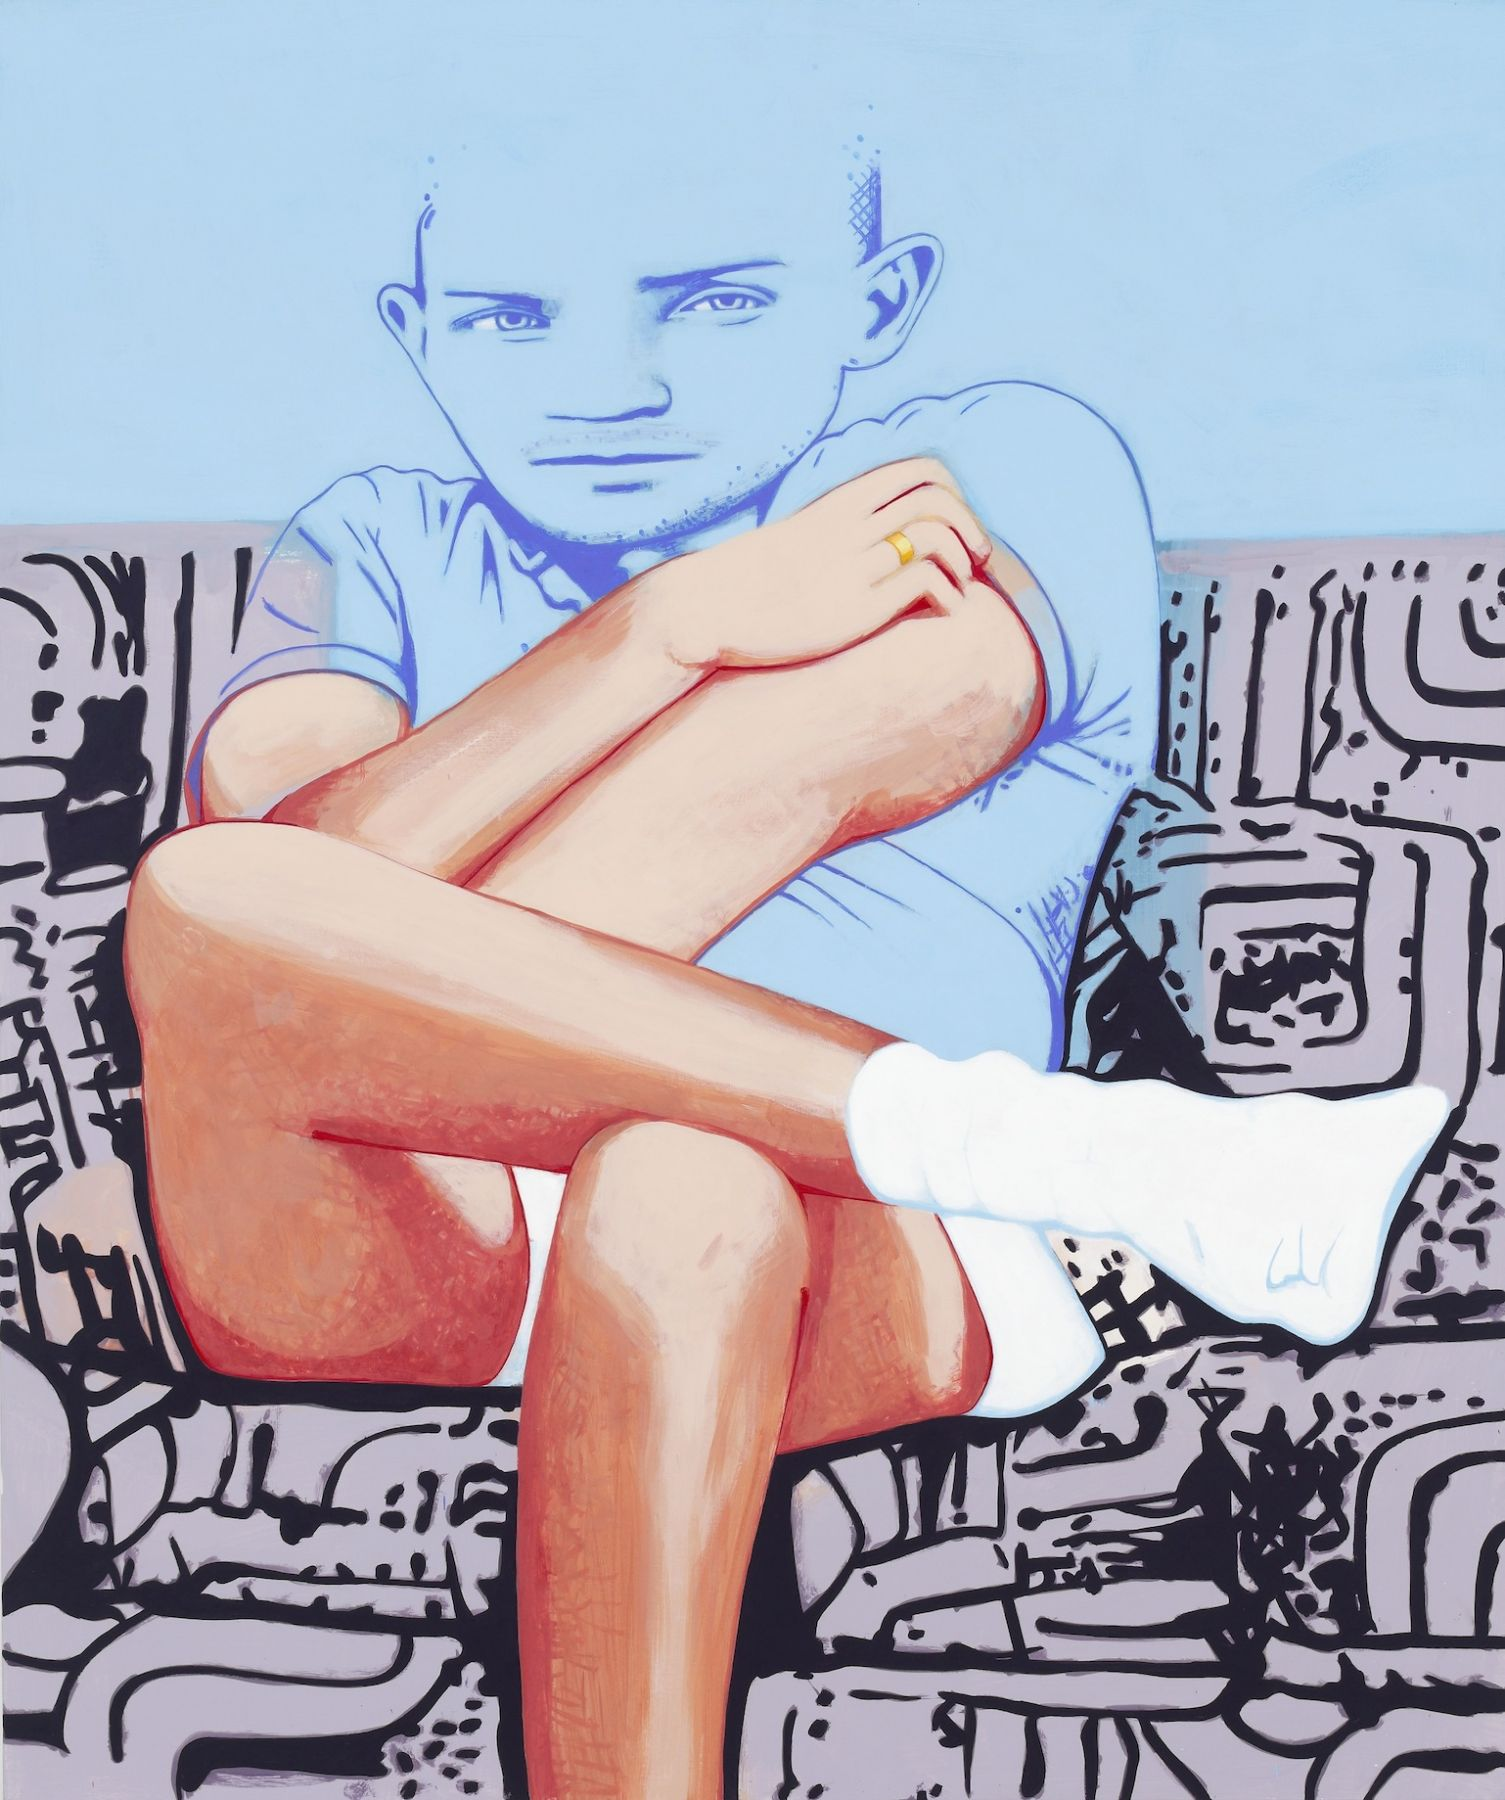 DAVID HUMPHREY, On the Couch, 2014